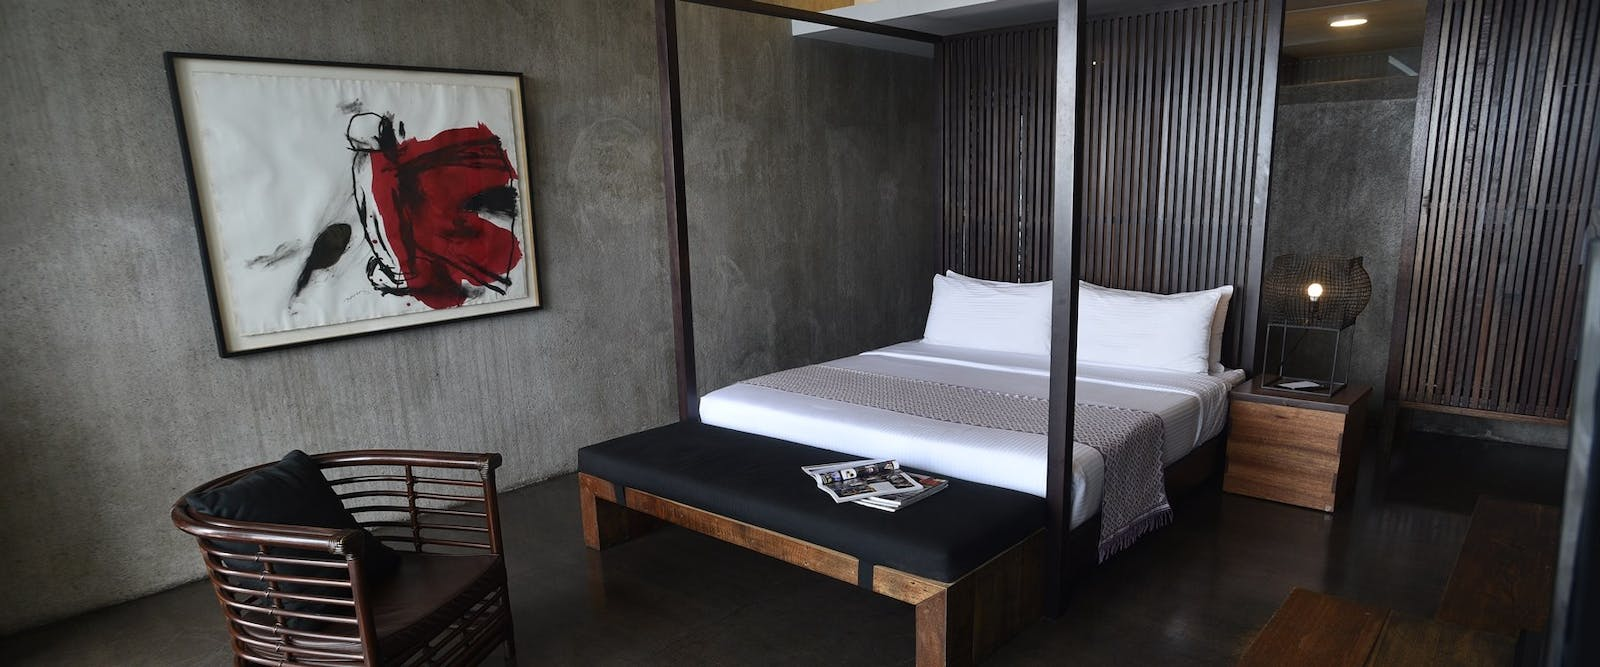 Superior bedroom, Domicillo Design Hotel